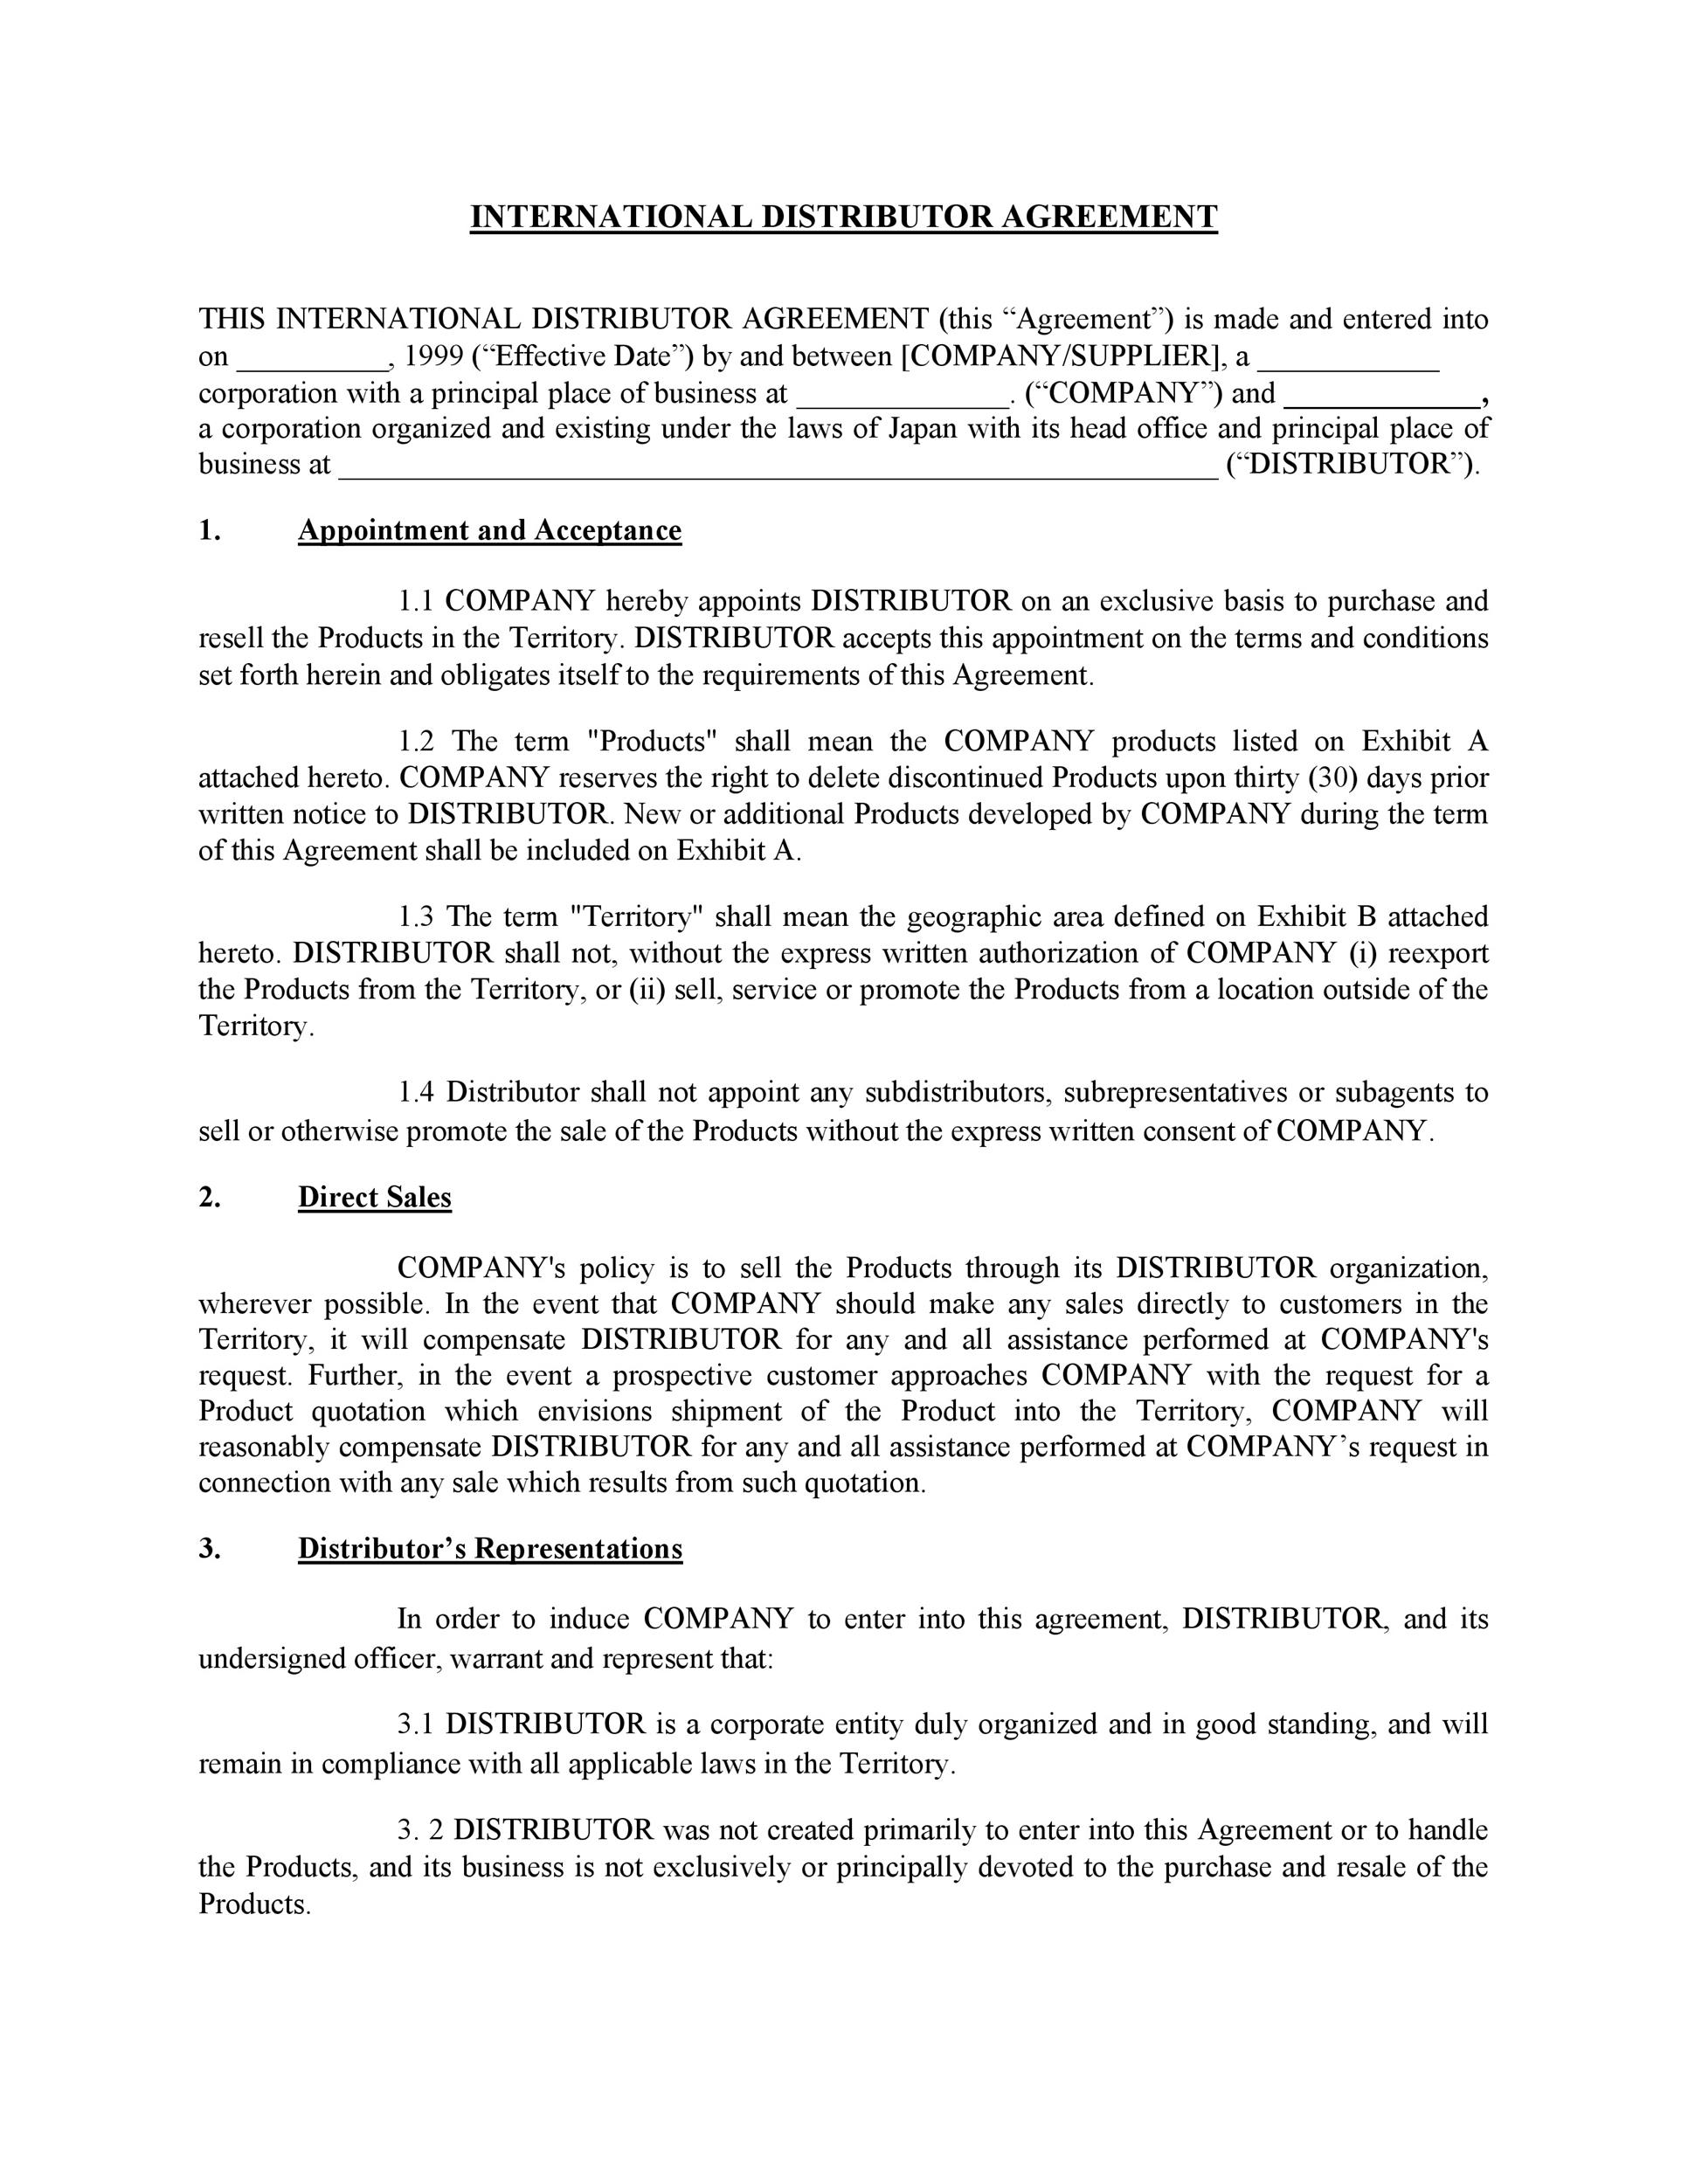 Termination Of Distribution Agreement Letter from templatelab.com